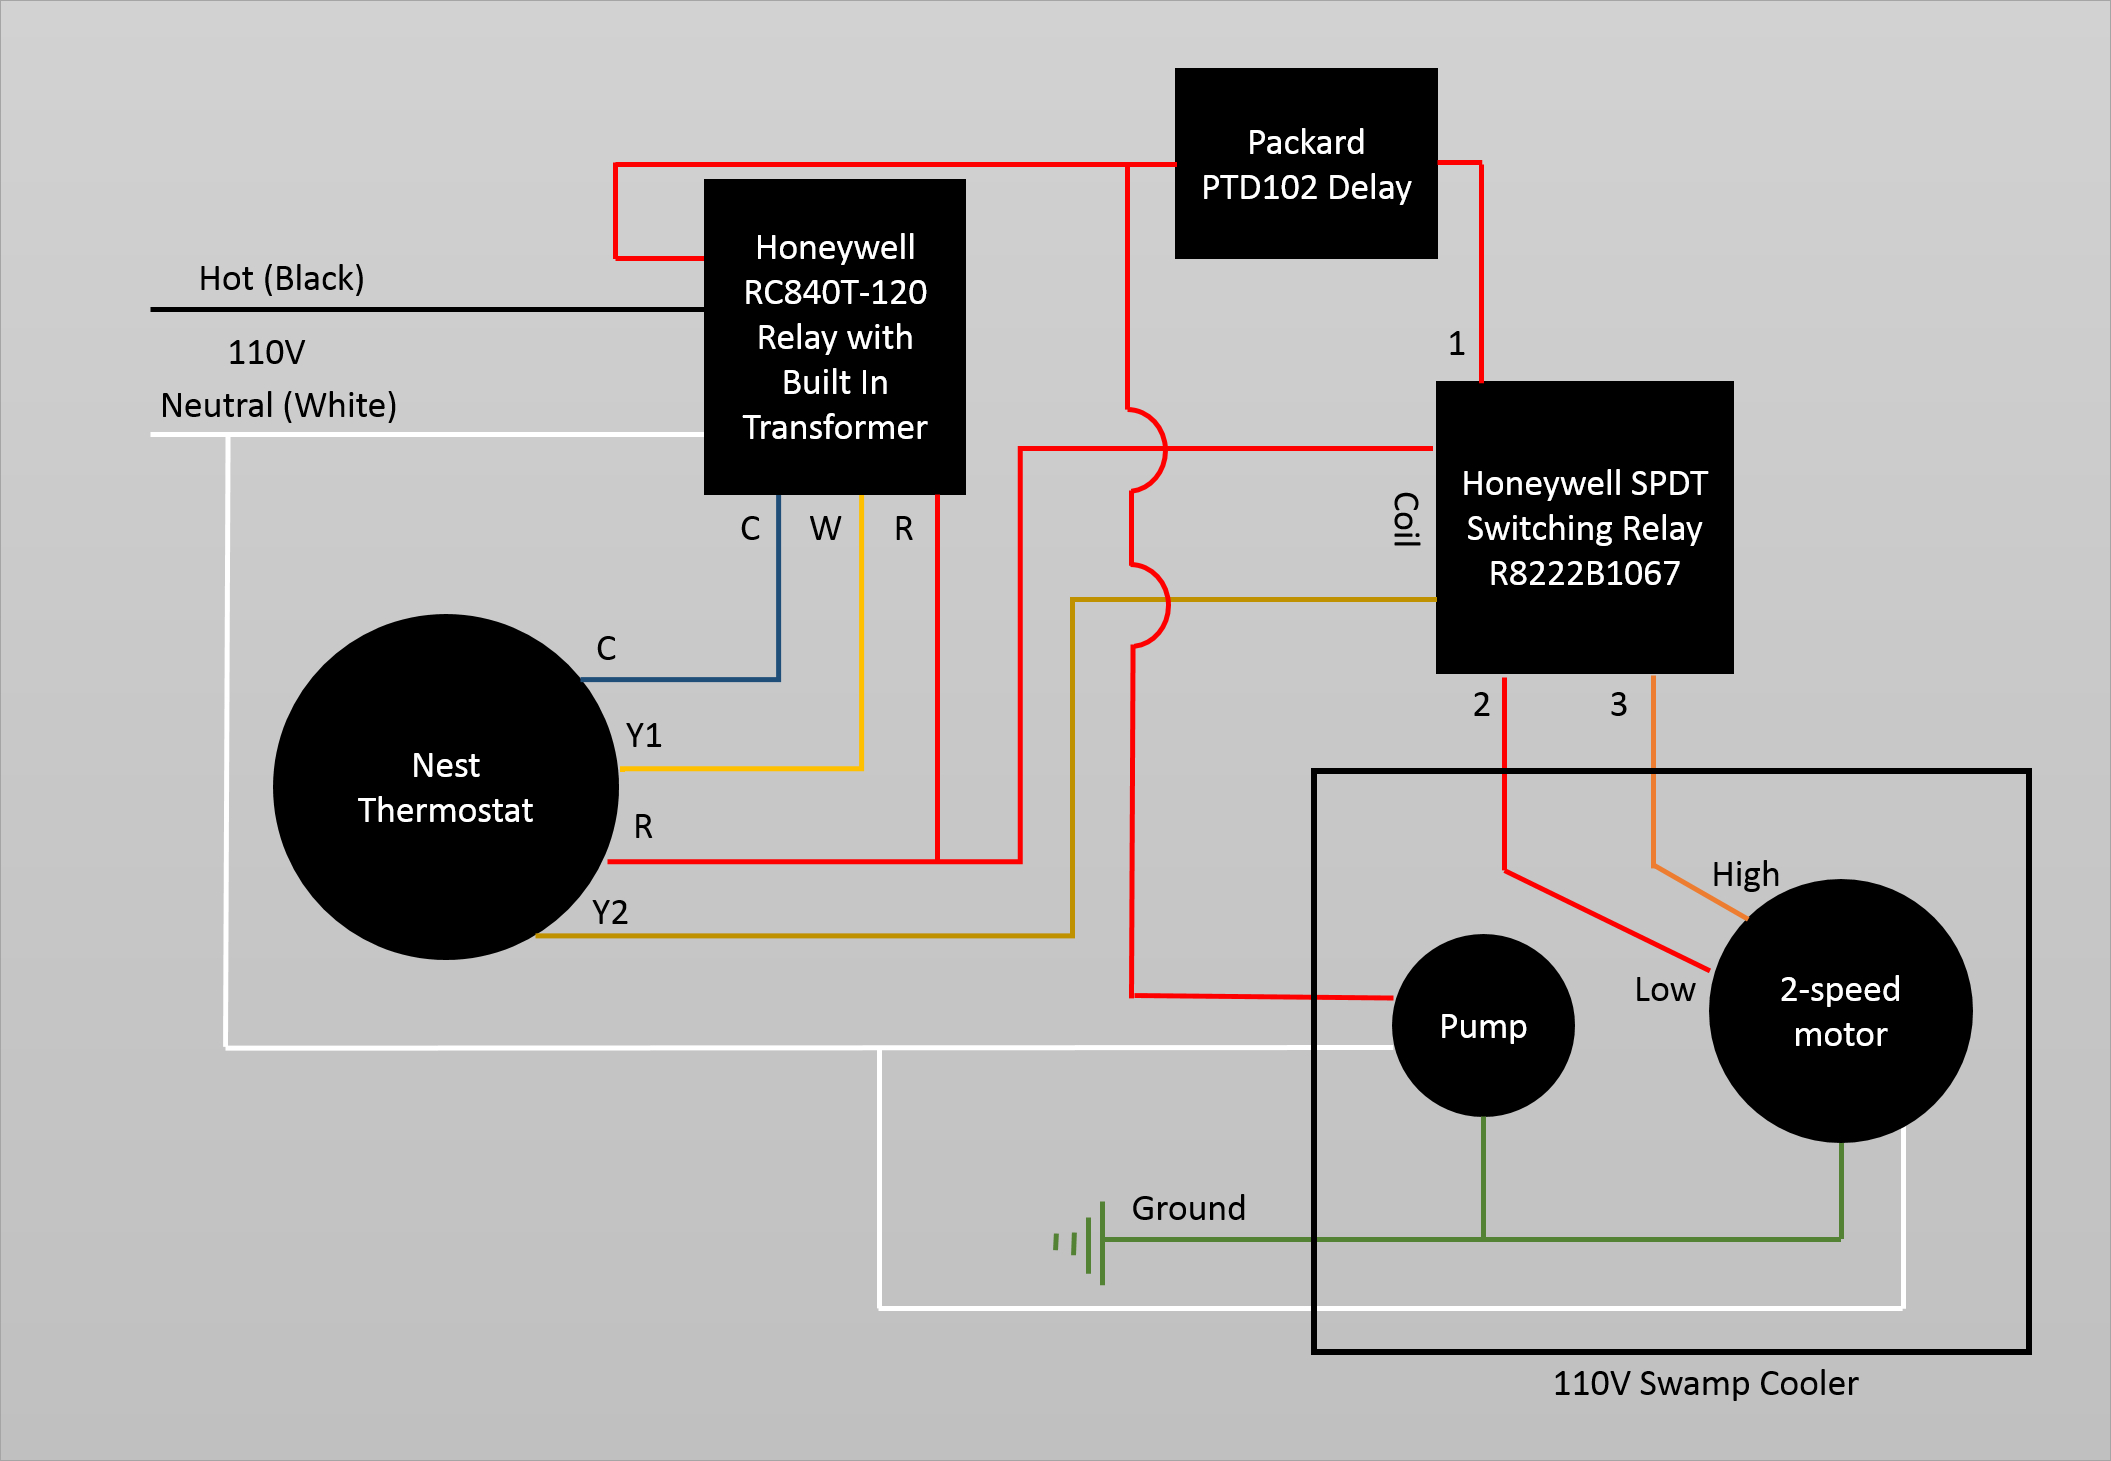 Wiring - Controlling 110V Swamp Cooler Using Nest Thermostat - Home - Nest 3Rd Generation Wiring Diagram Fan Control